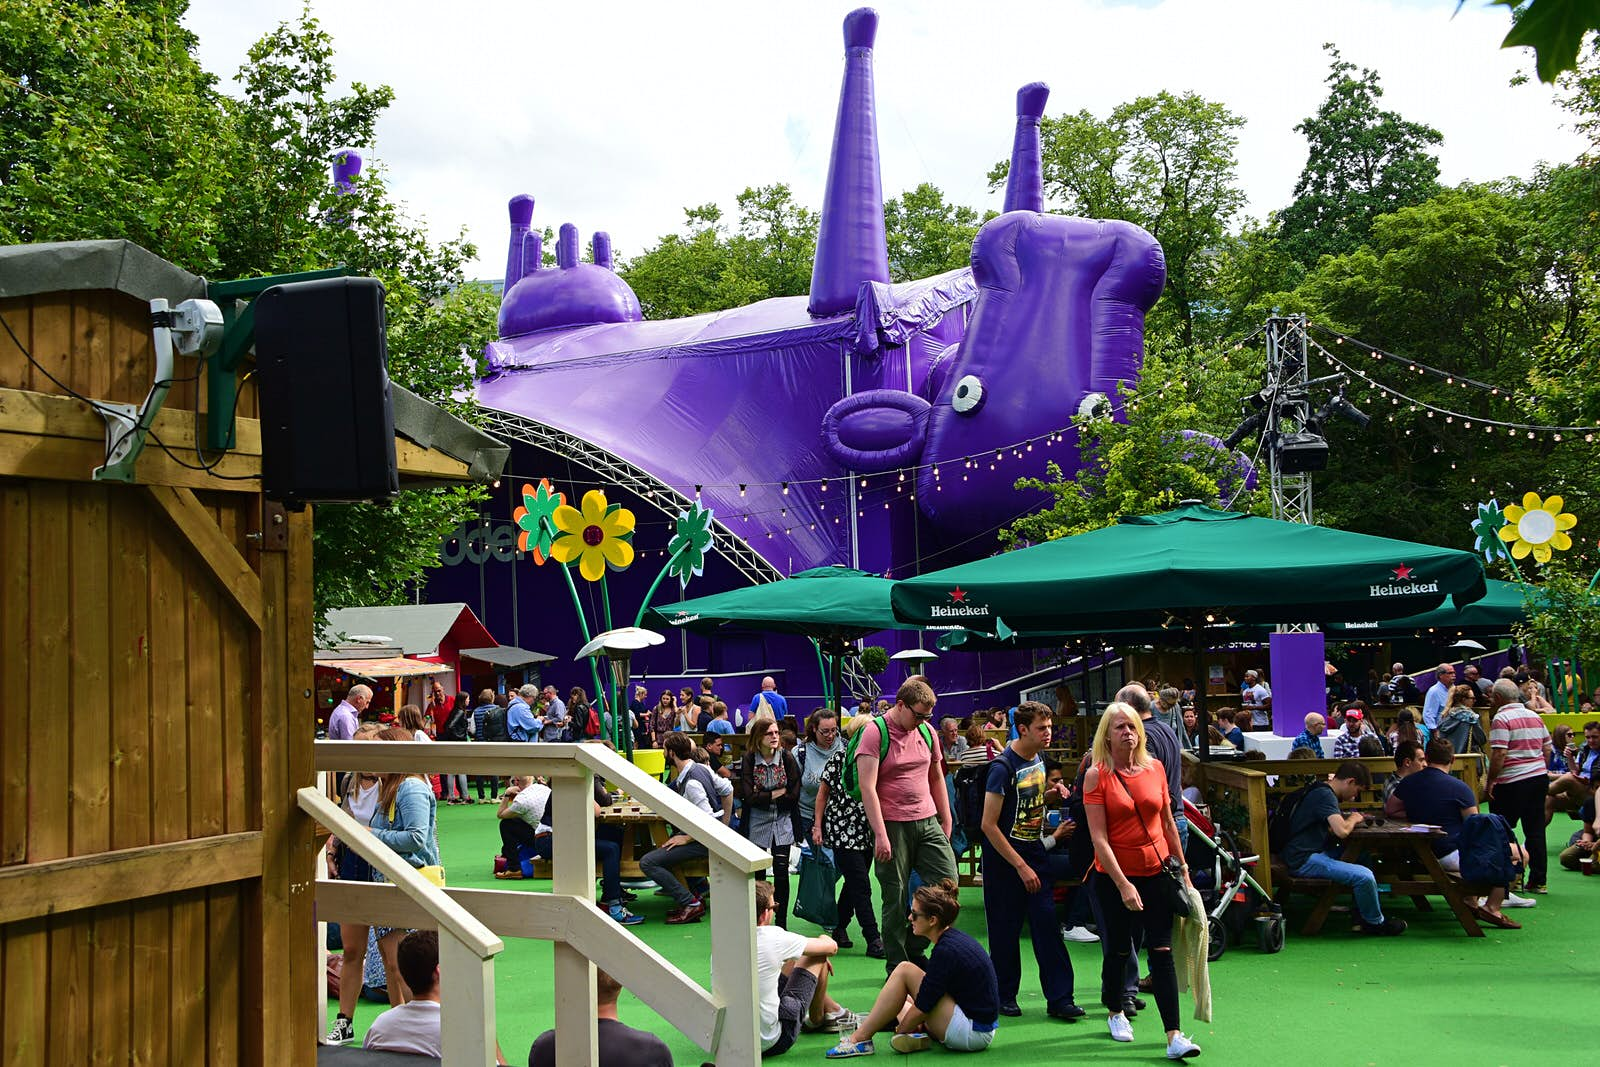 Fringe-goers enjoy the sunshine in the Underbelly Pasture, one of the off-street venues for the Edinburgh Festival Fringe. The Underbelly stage is a hug inflatable upside down purple cow.